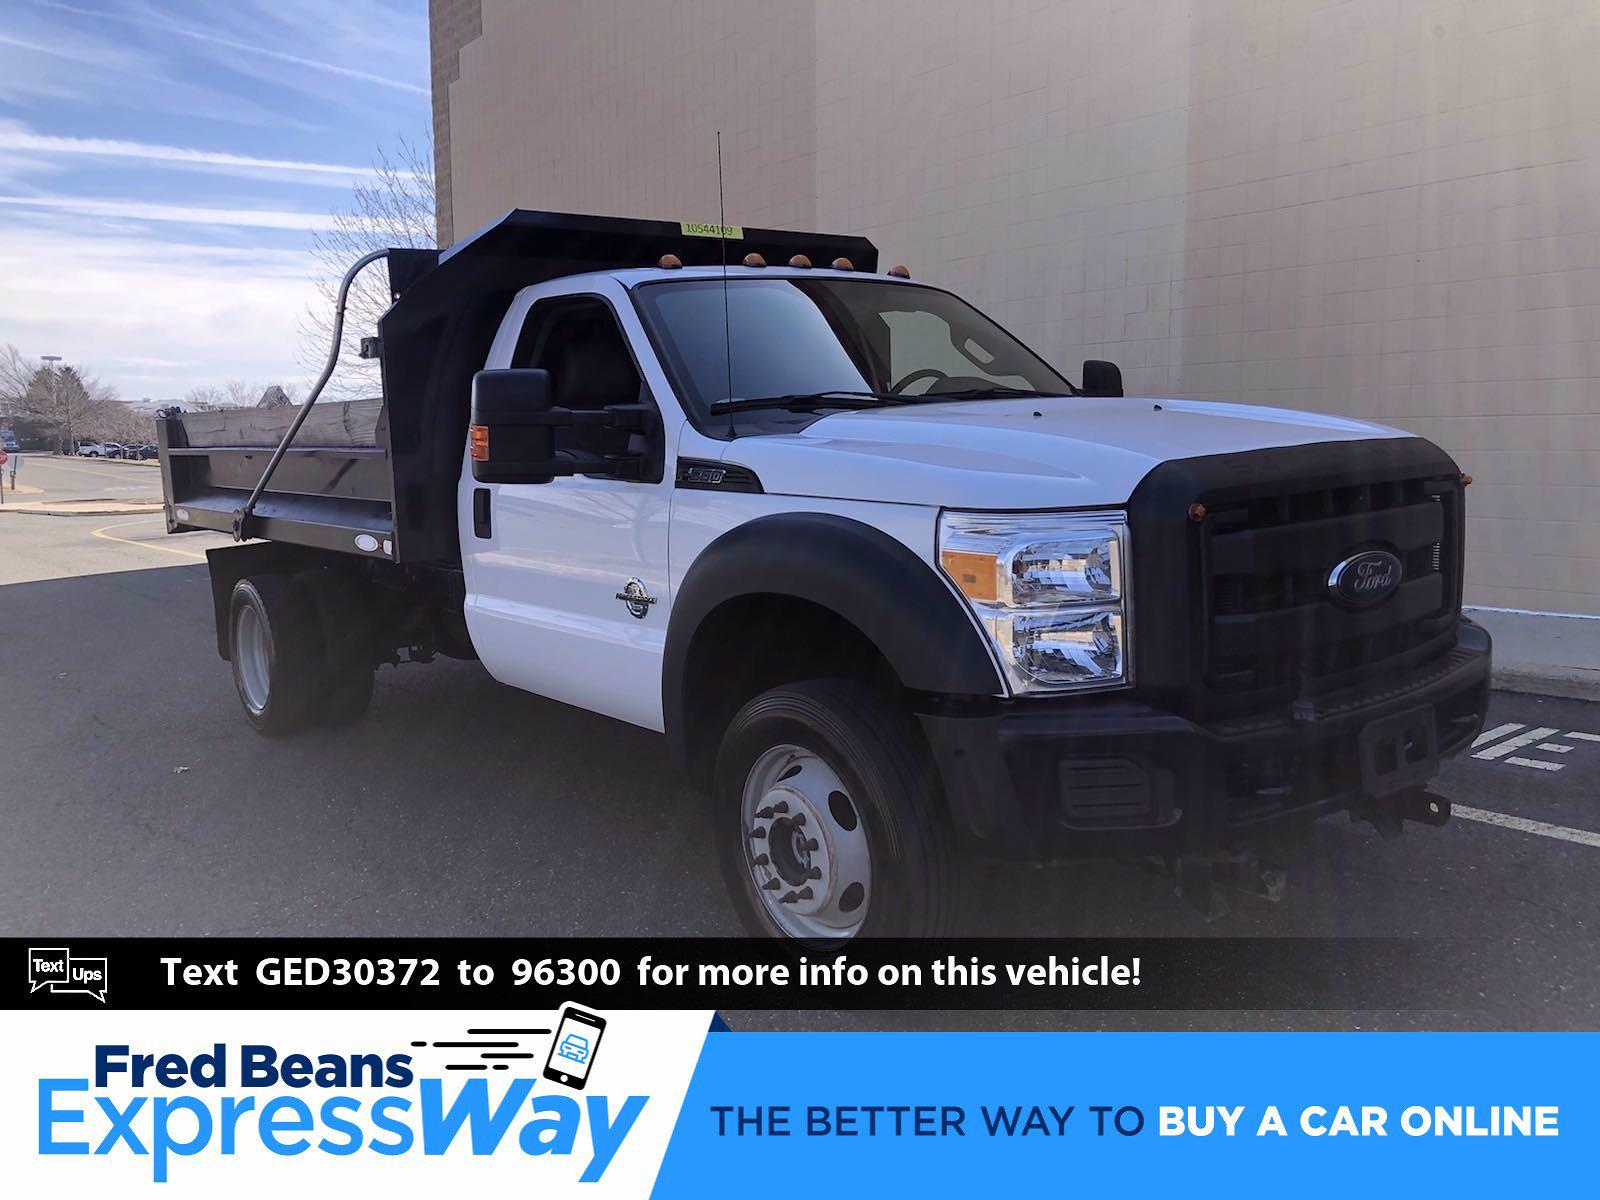 2016 Ford F-550 Regular Cab DRW 4x4, Dump Body #FL1098J - photo 1